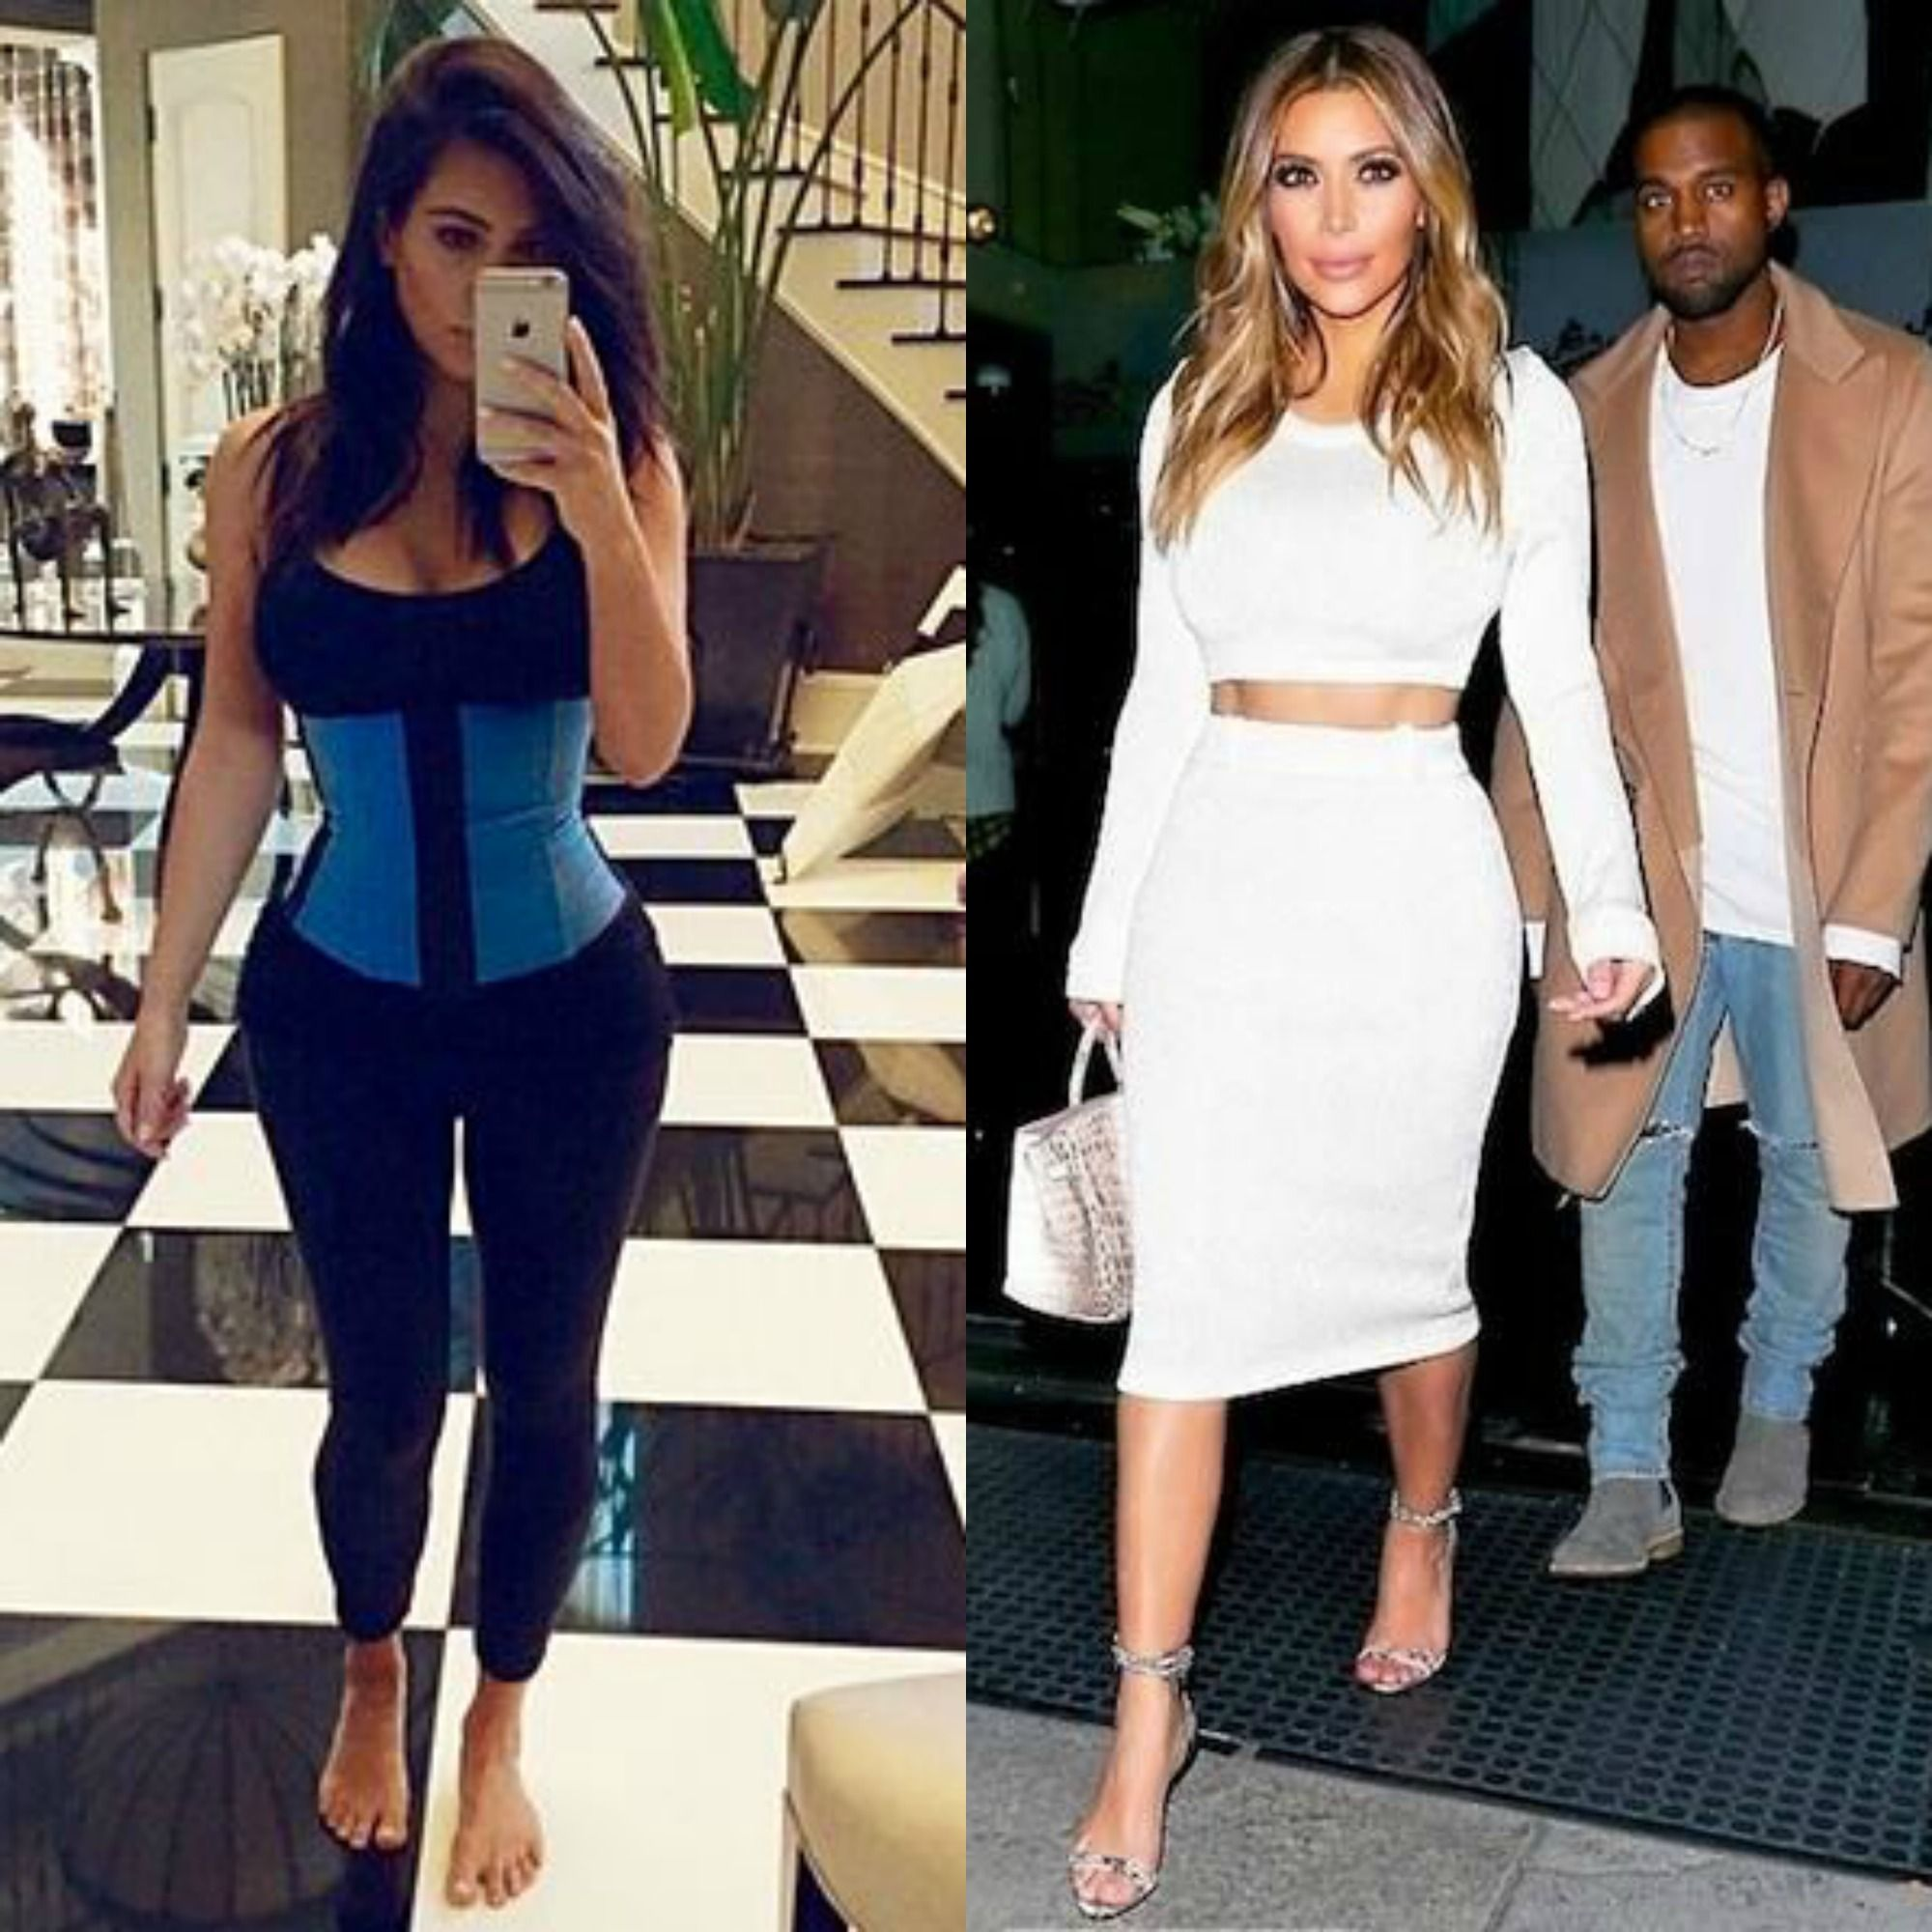 053cb6a56d How Kim Kardashian got her small waist after having North. We show you how  to waist train for dramatic results.